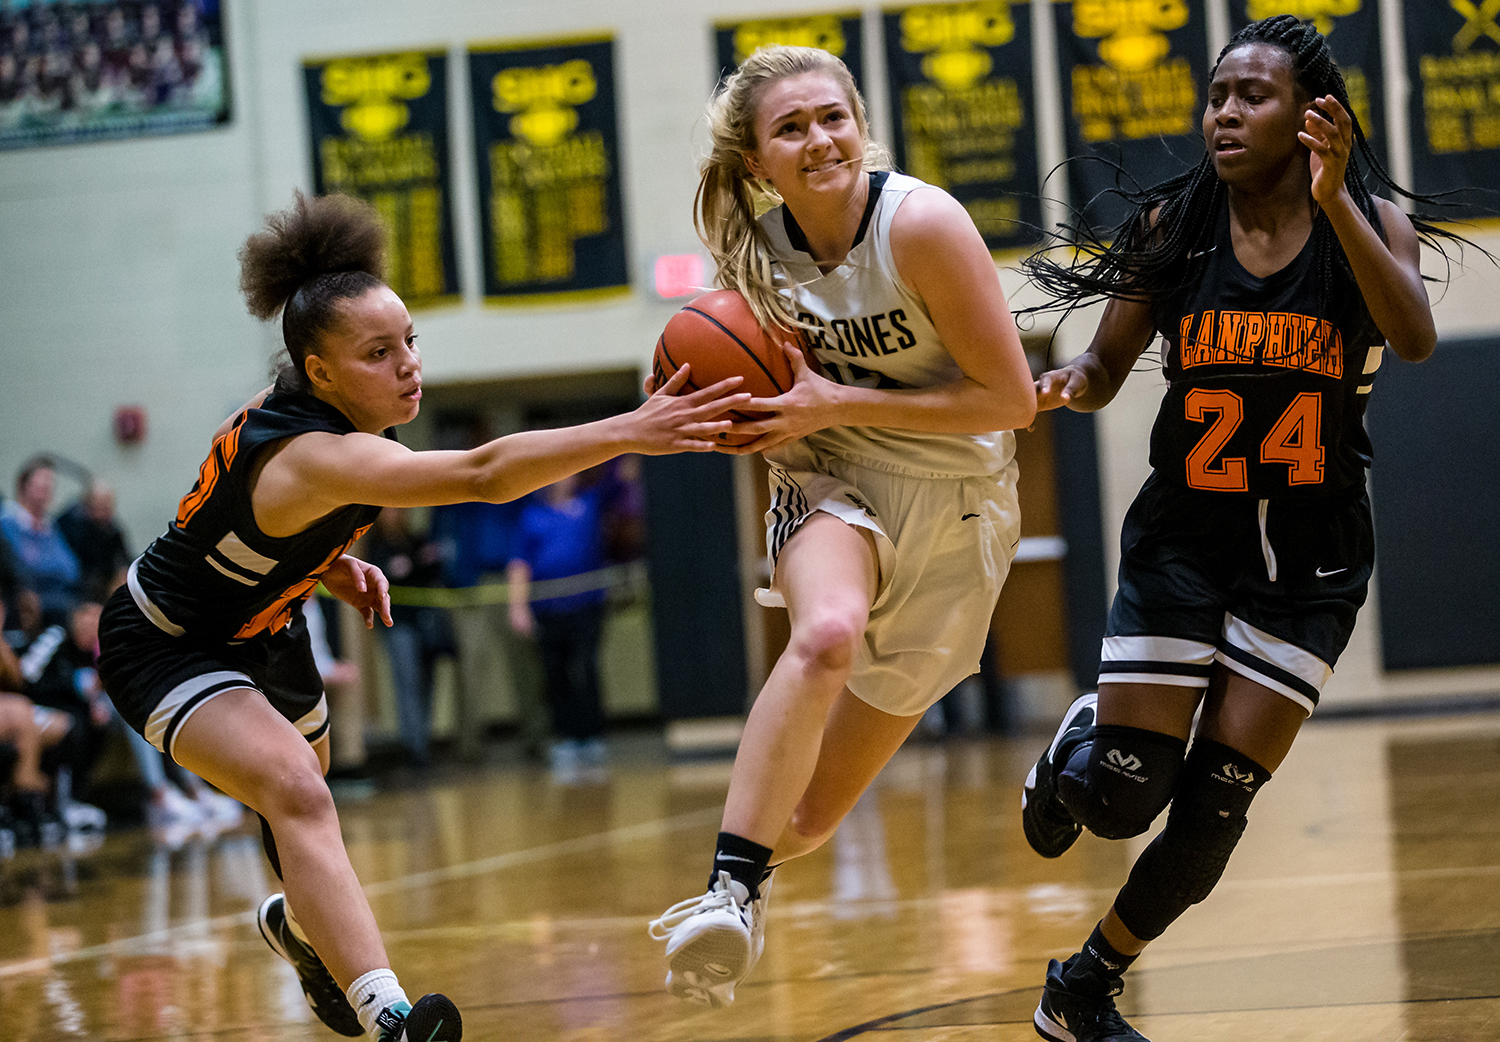 Sacred Heart-Griffin's Payton Vorreyer (13) drives in to the basket against Lanphier's Martrice Brooks (24) in the second half on the opening night of the Girls City Tournament at Sacred Heart-Griffin's West Campus, Wednesday, Jan. 23, 2019, in Springfield, Ill. [Justin L. Fowler/The State Journal-Register]